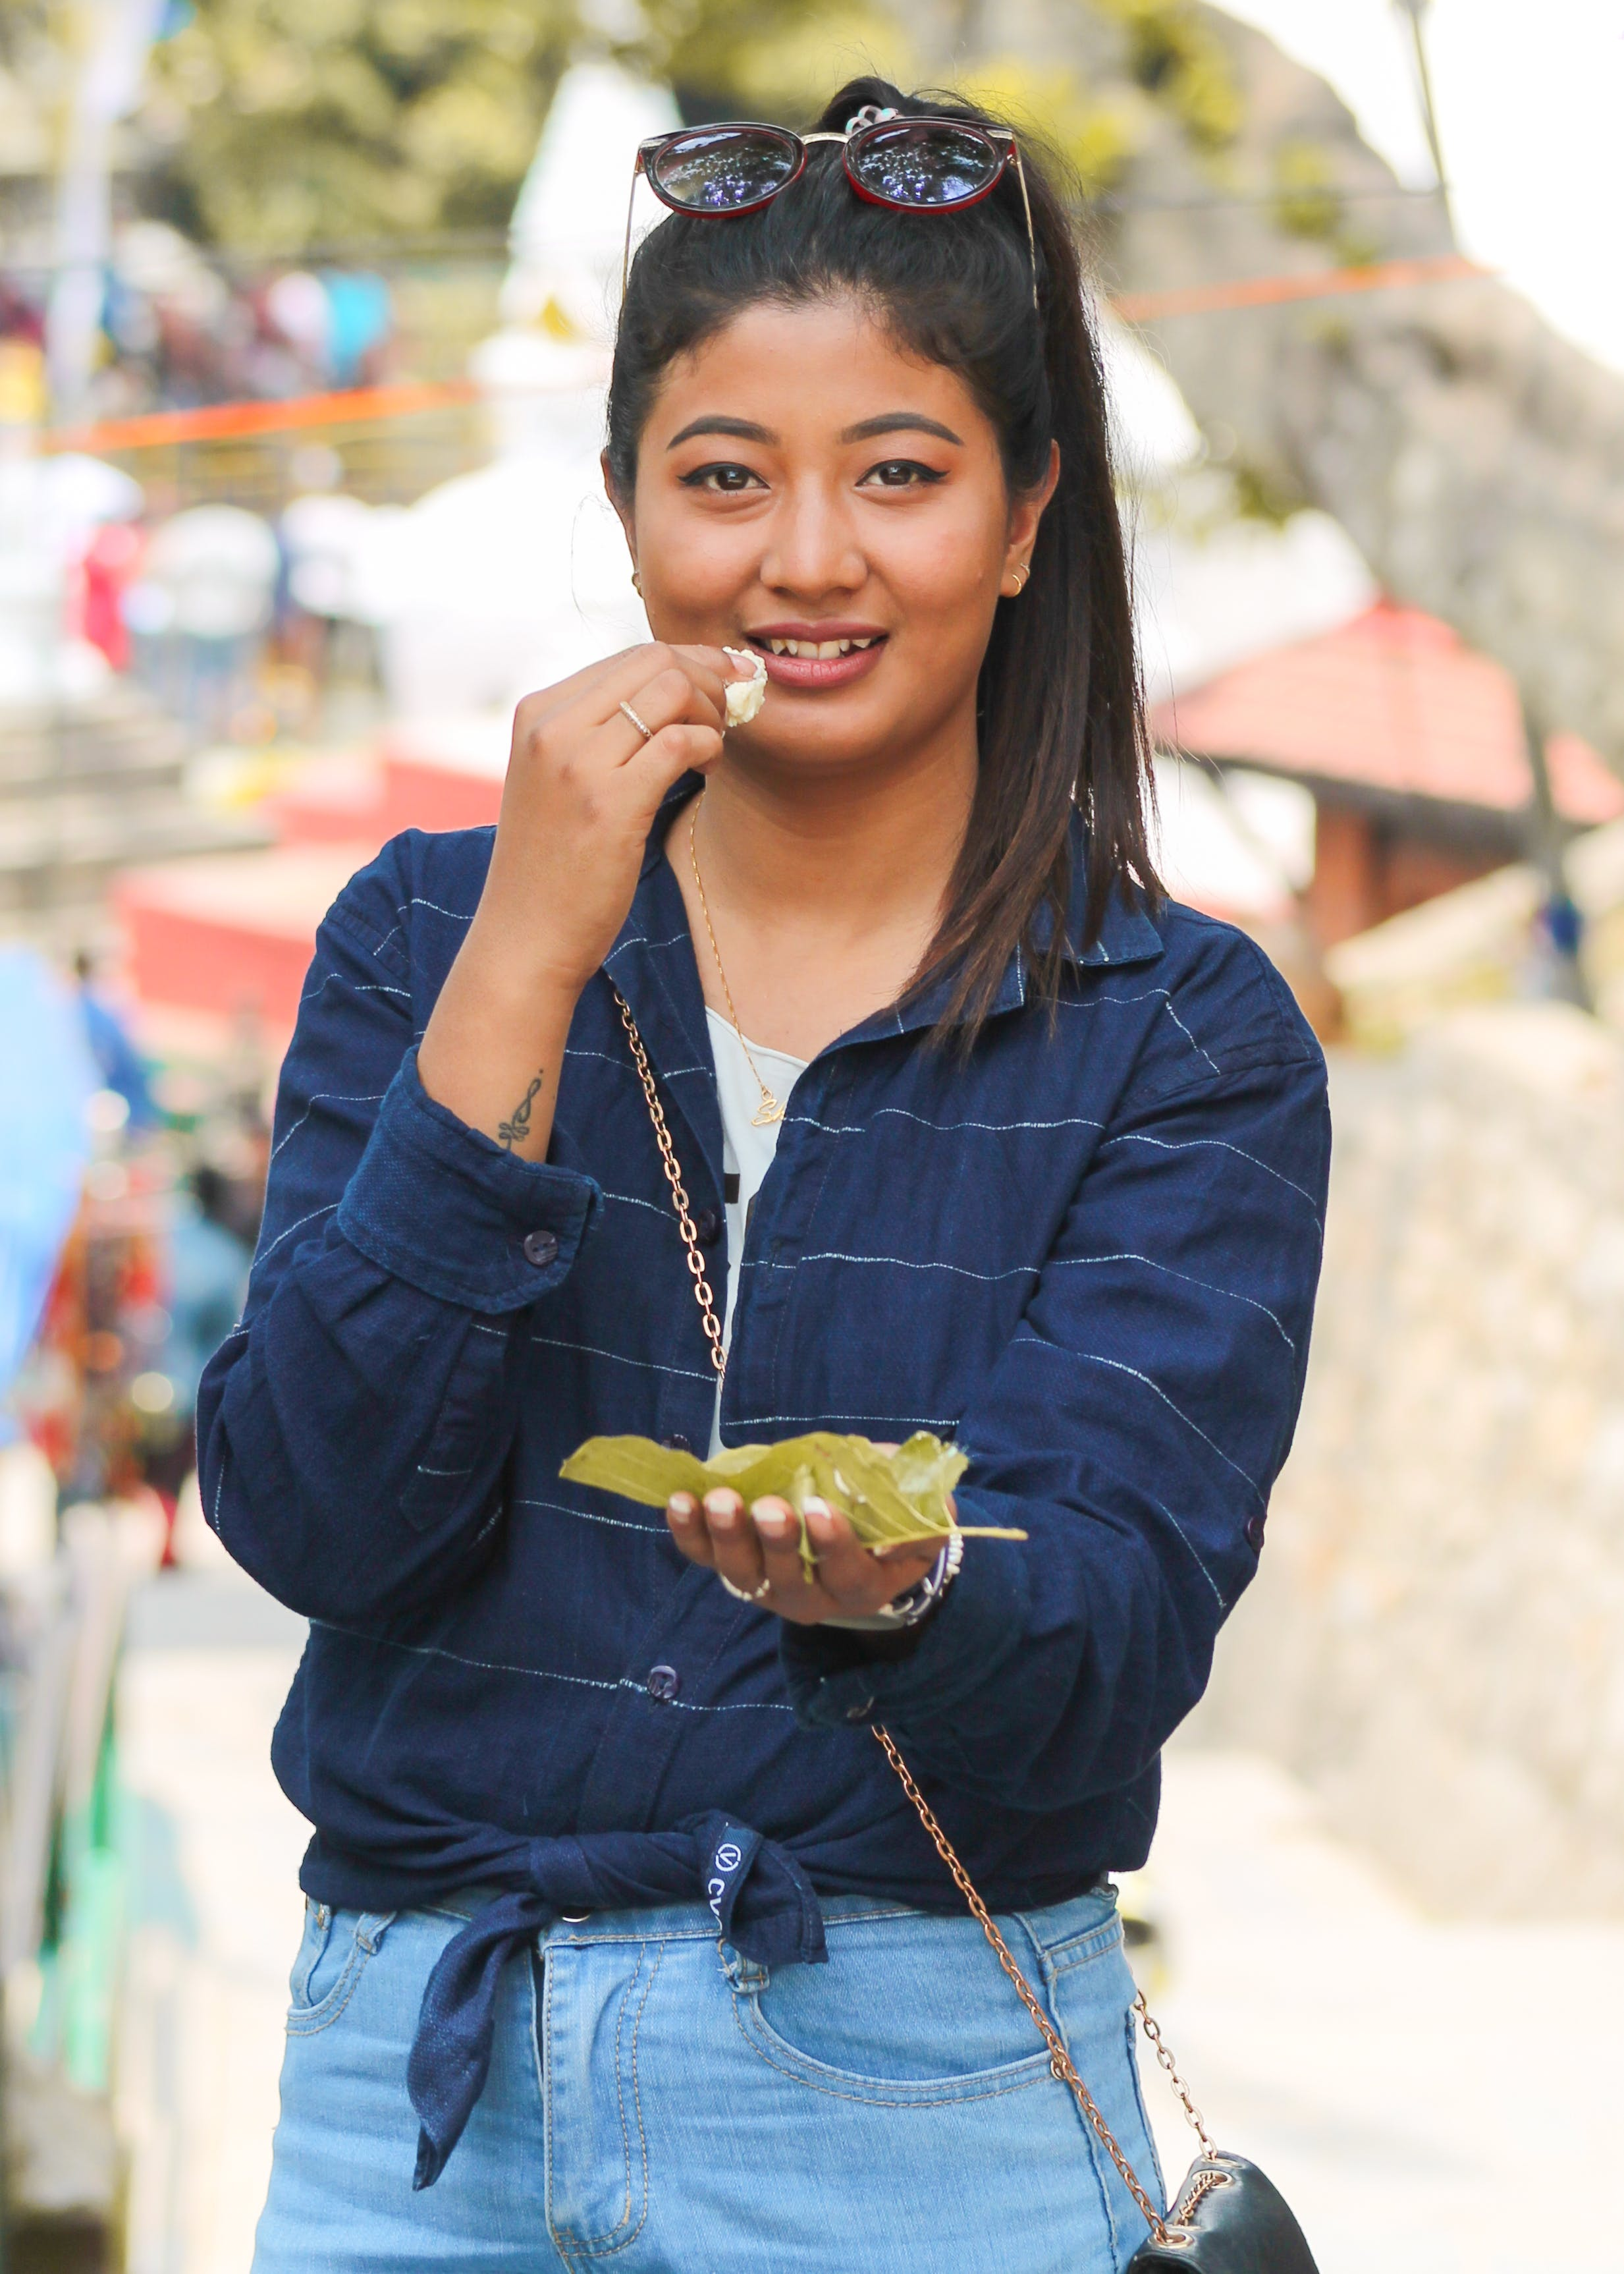 Photography of Woman Eating